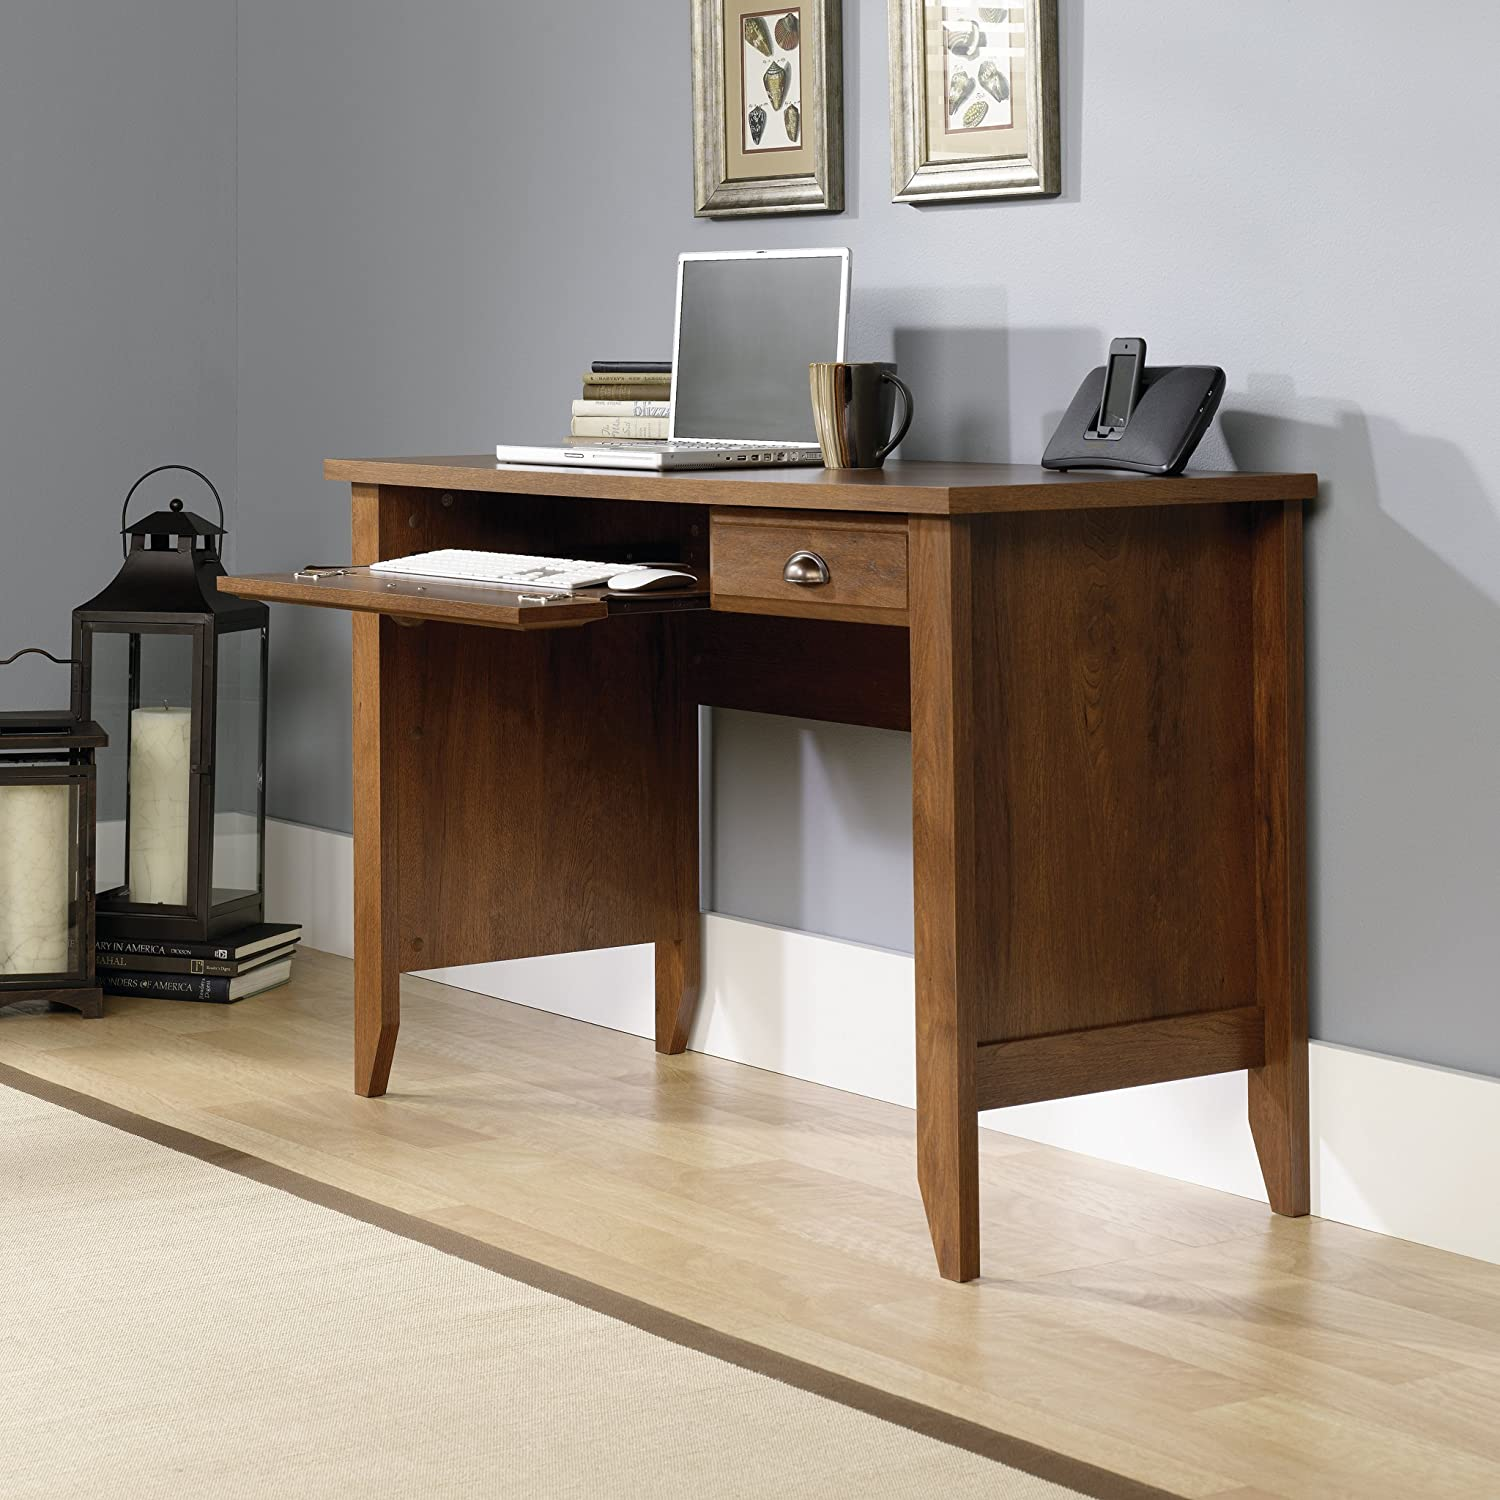 Amazon.com: Sauder Shoal Creek Computer Desk, Oiled Oak Finish: Kitchen U0026  Dining